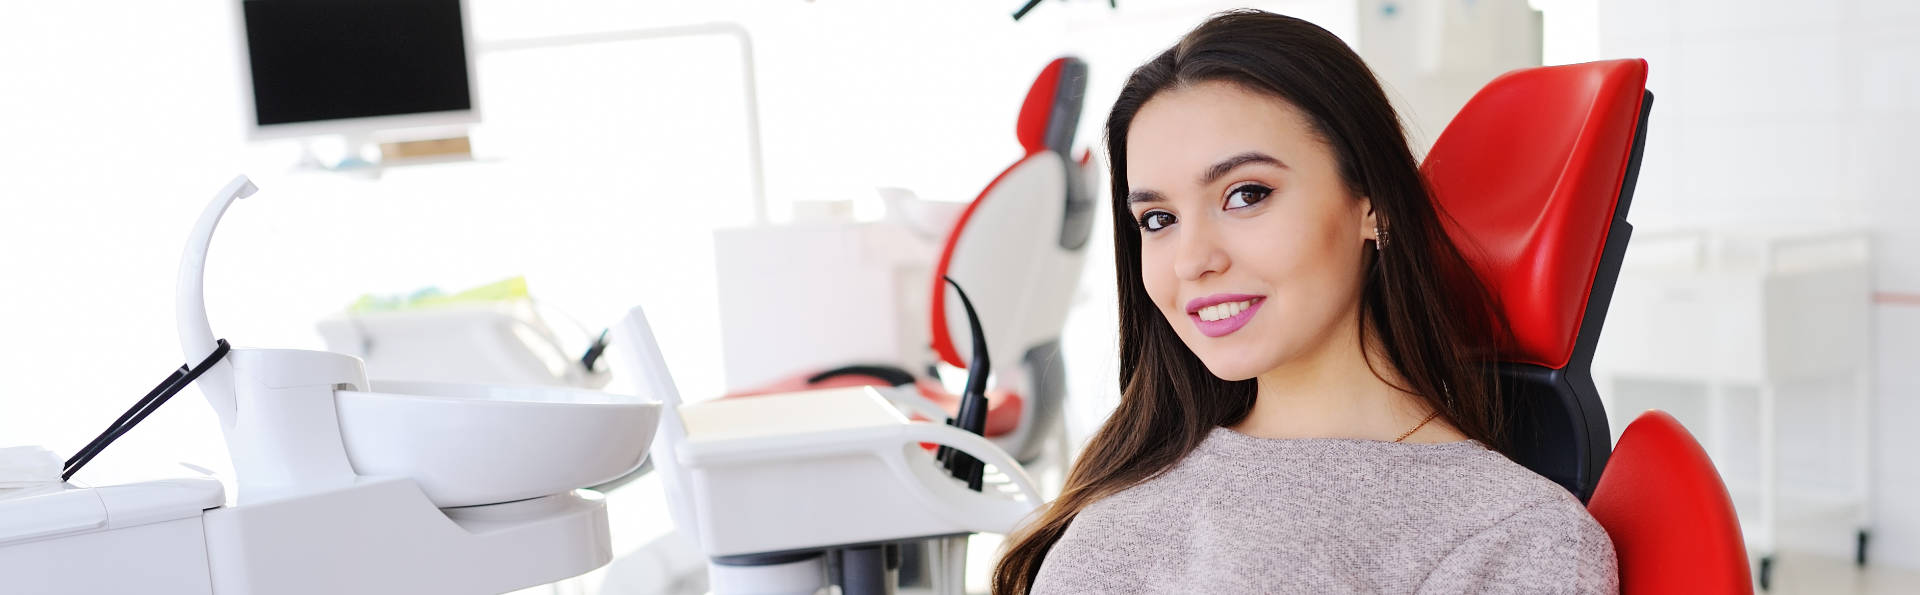 woman sitting on a dentistry chair